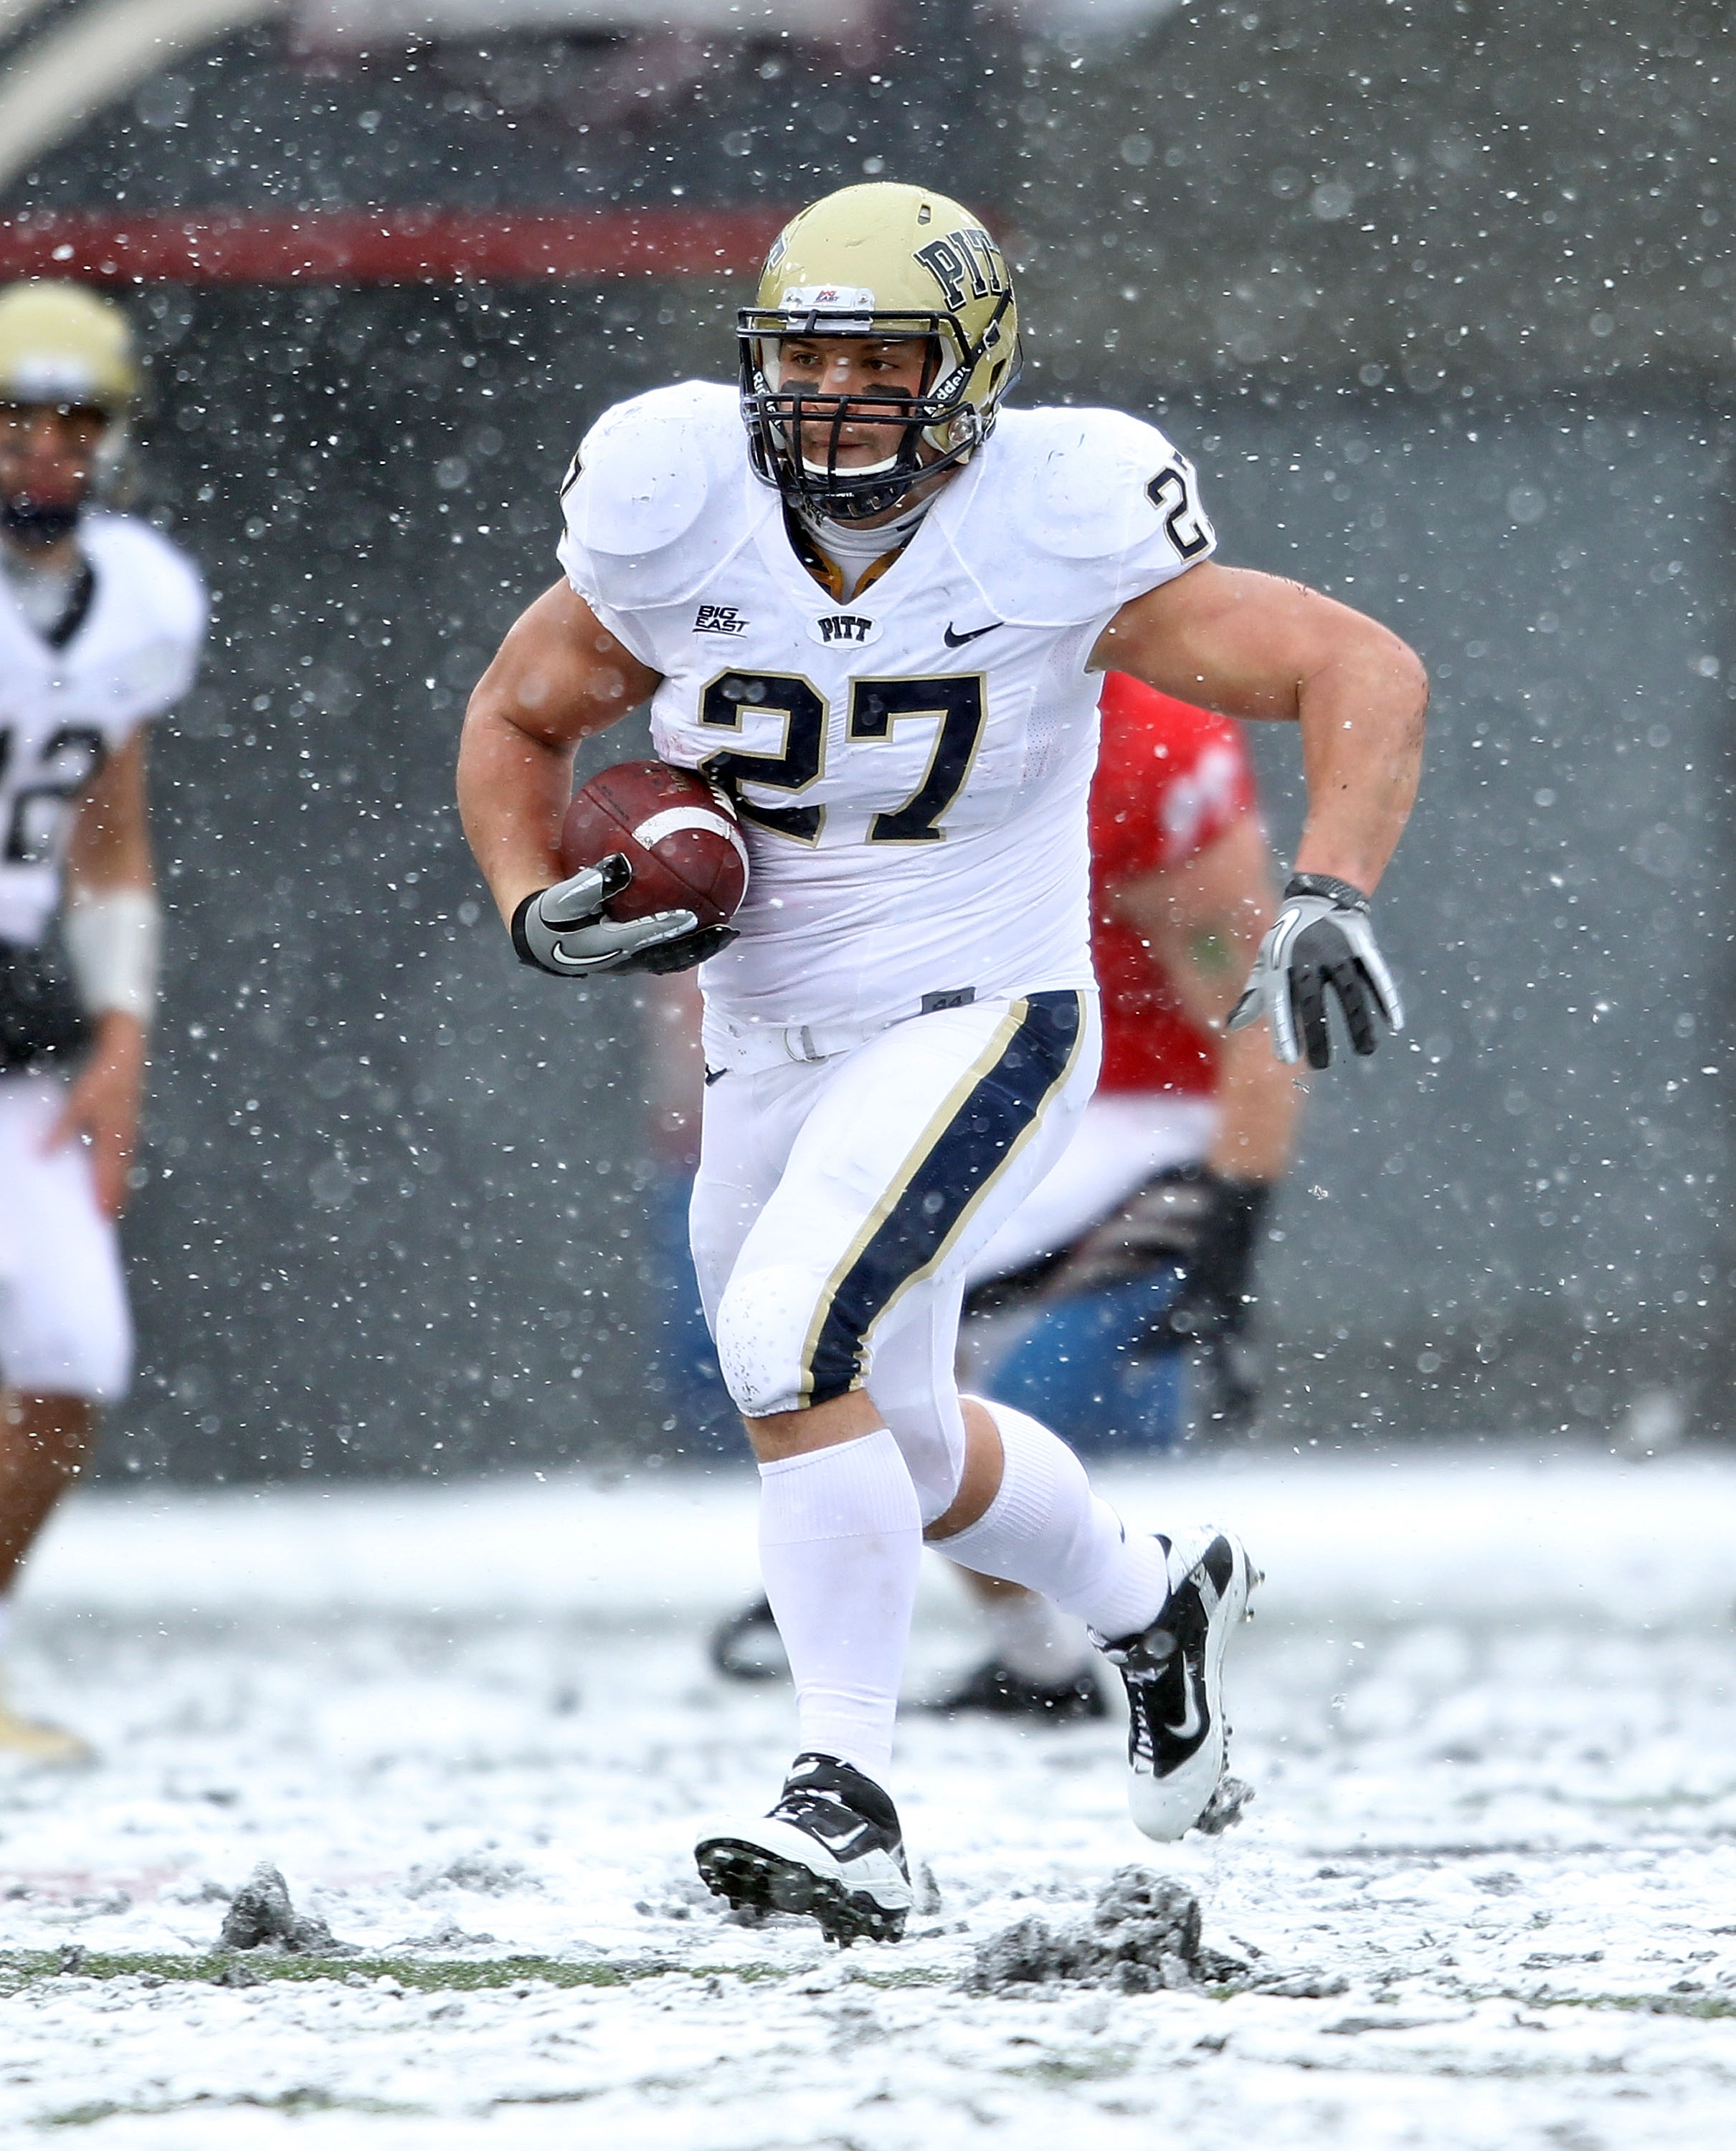 CINCINNATI, OH - DECEMBER 04:  Henry Hynoski #27 of the Pittsburgh Panthers runs with the ball during the Big East Conference game against the Cincinnati Bearcats at Nippert Stadium on December 4, 2010 in Cincinnati, Ohio.  Pittsburgh won 28-10.  (Photo b